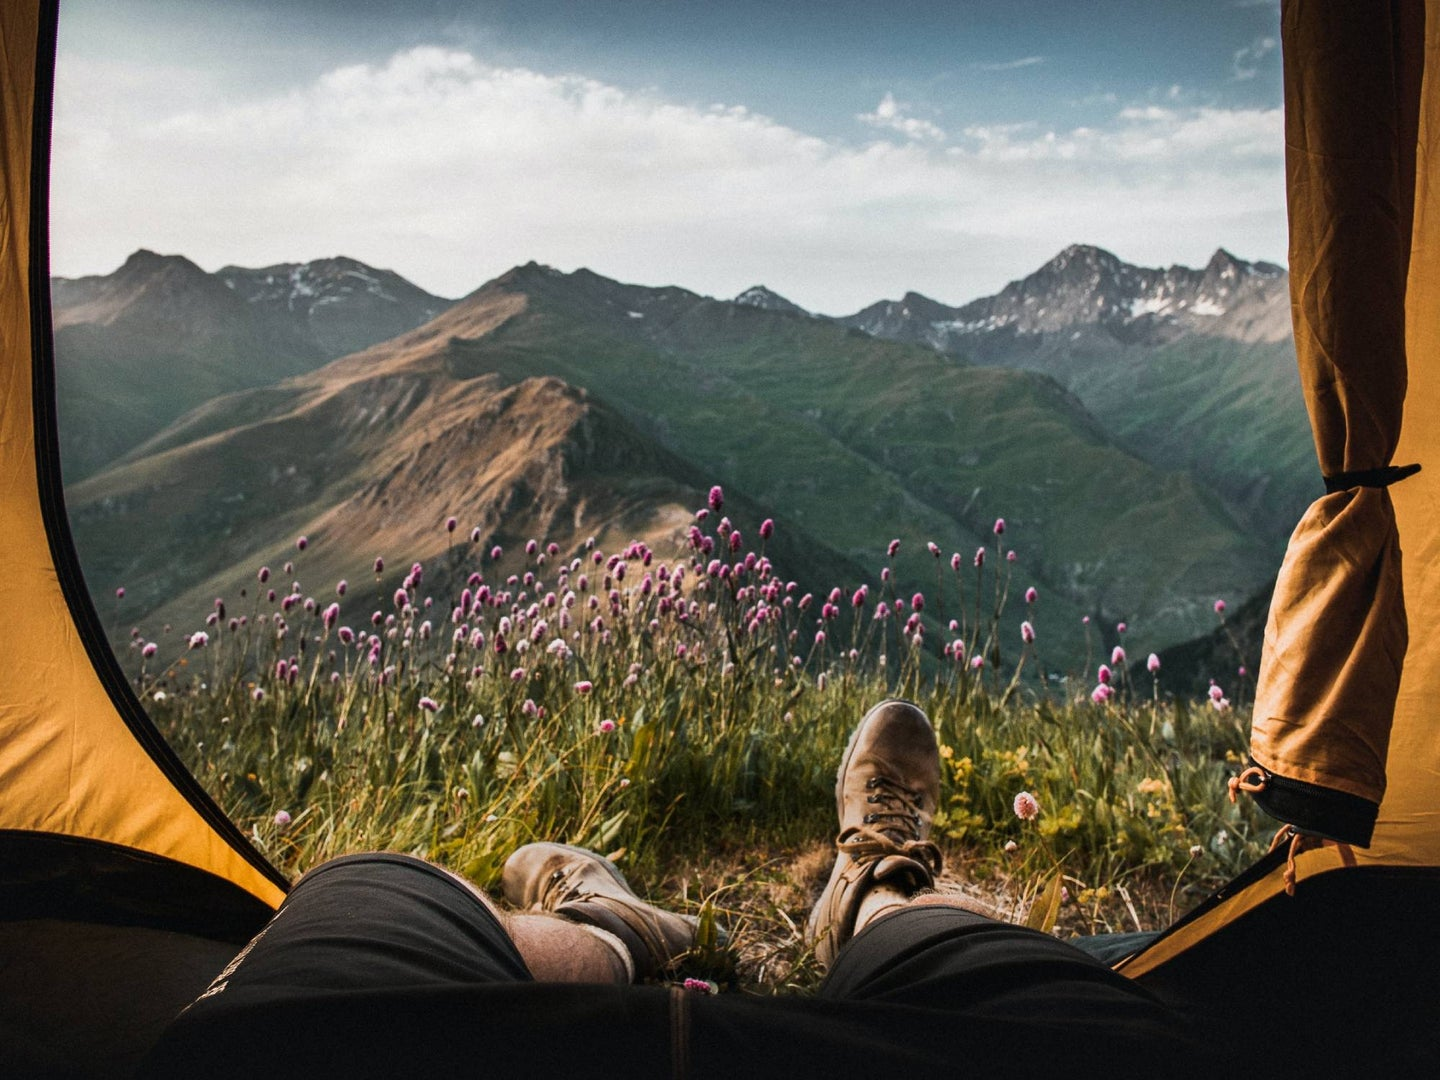 Person camping in the outdoors with feet out of tent.